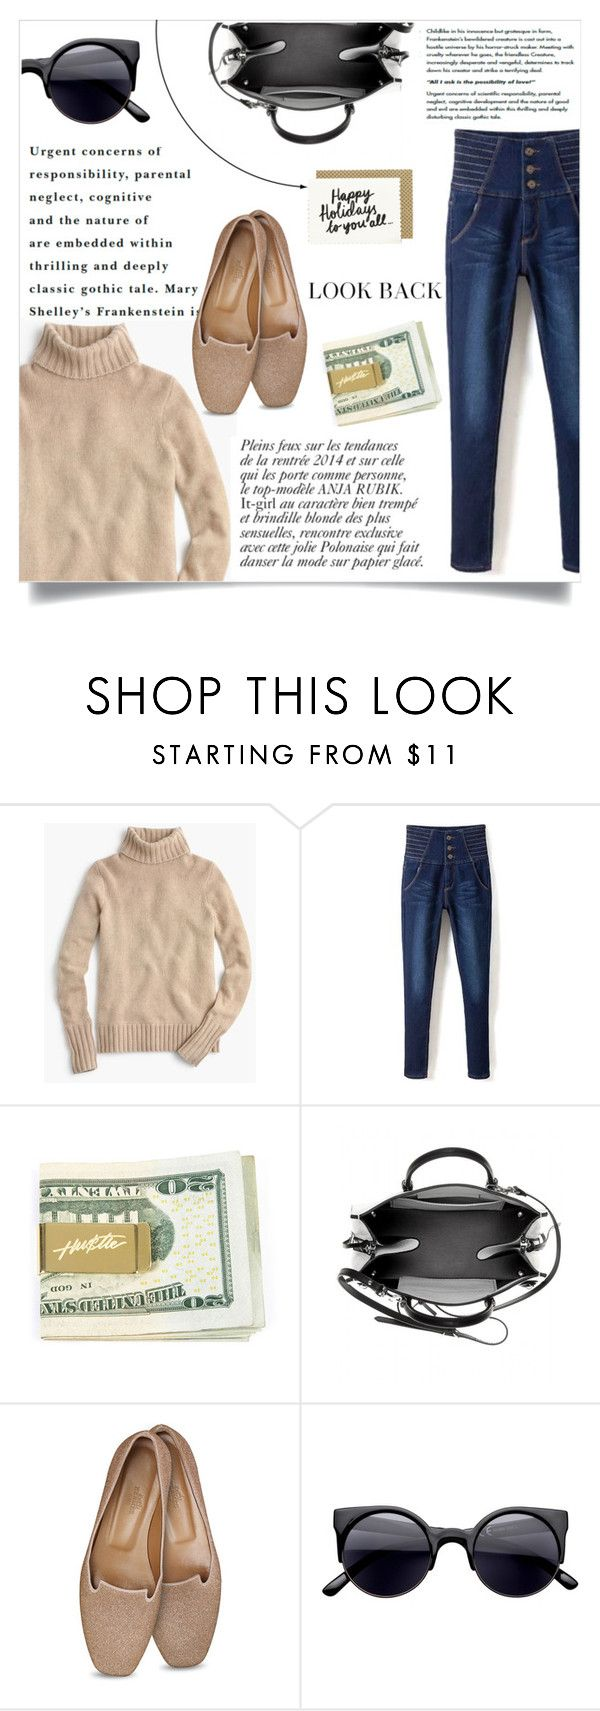 """""""A look back"""" by andreastoessel ❤ liked on Polyvore featuring J.Crew, Anja and Balenciaga"""